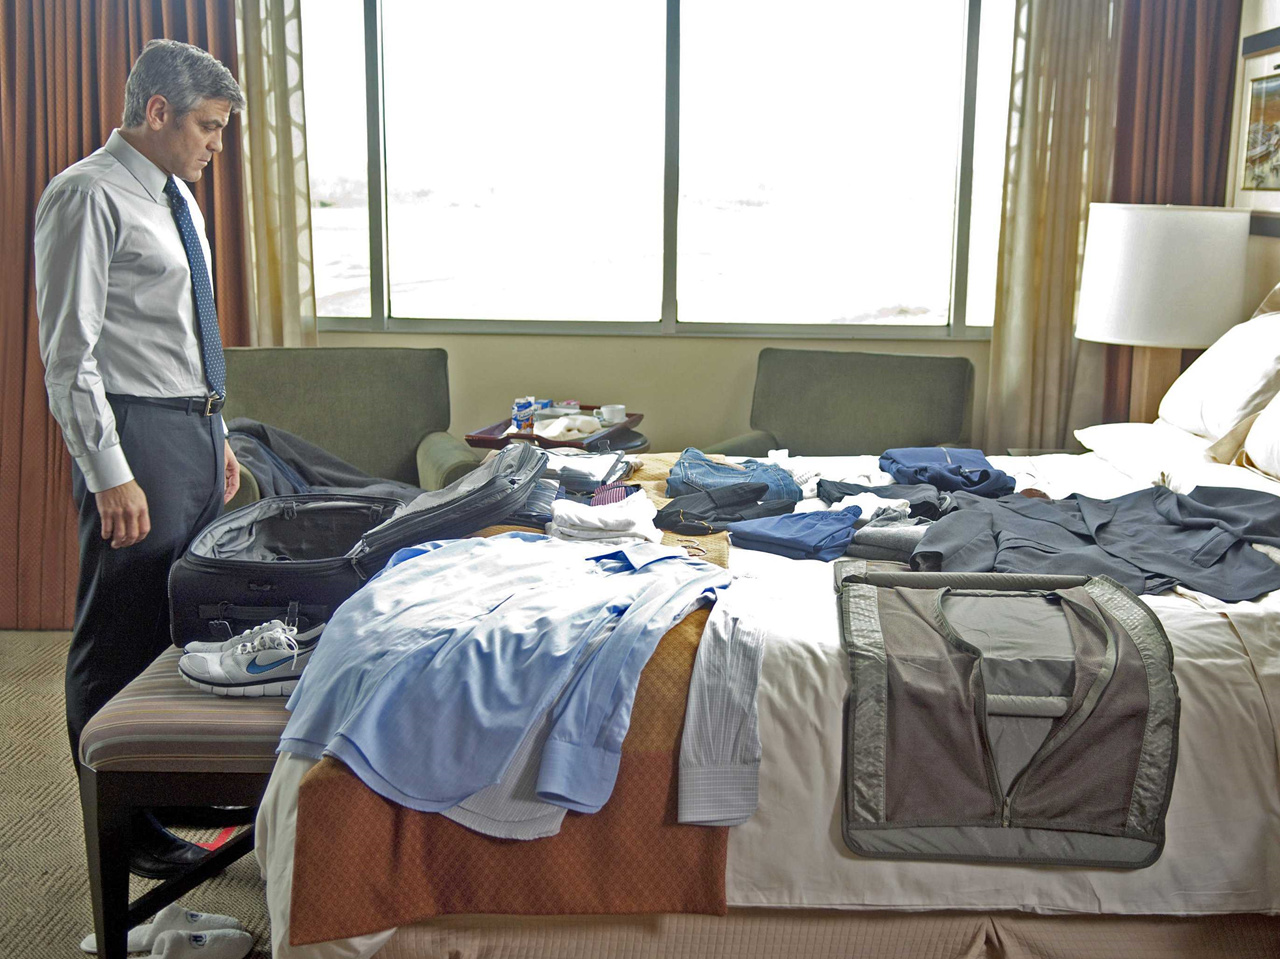 packing-business-trip-basics-tips-travel